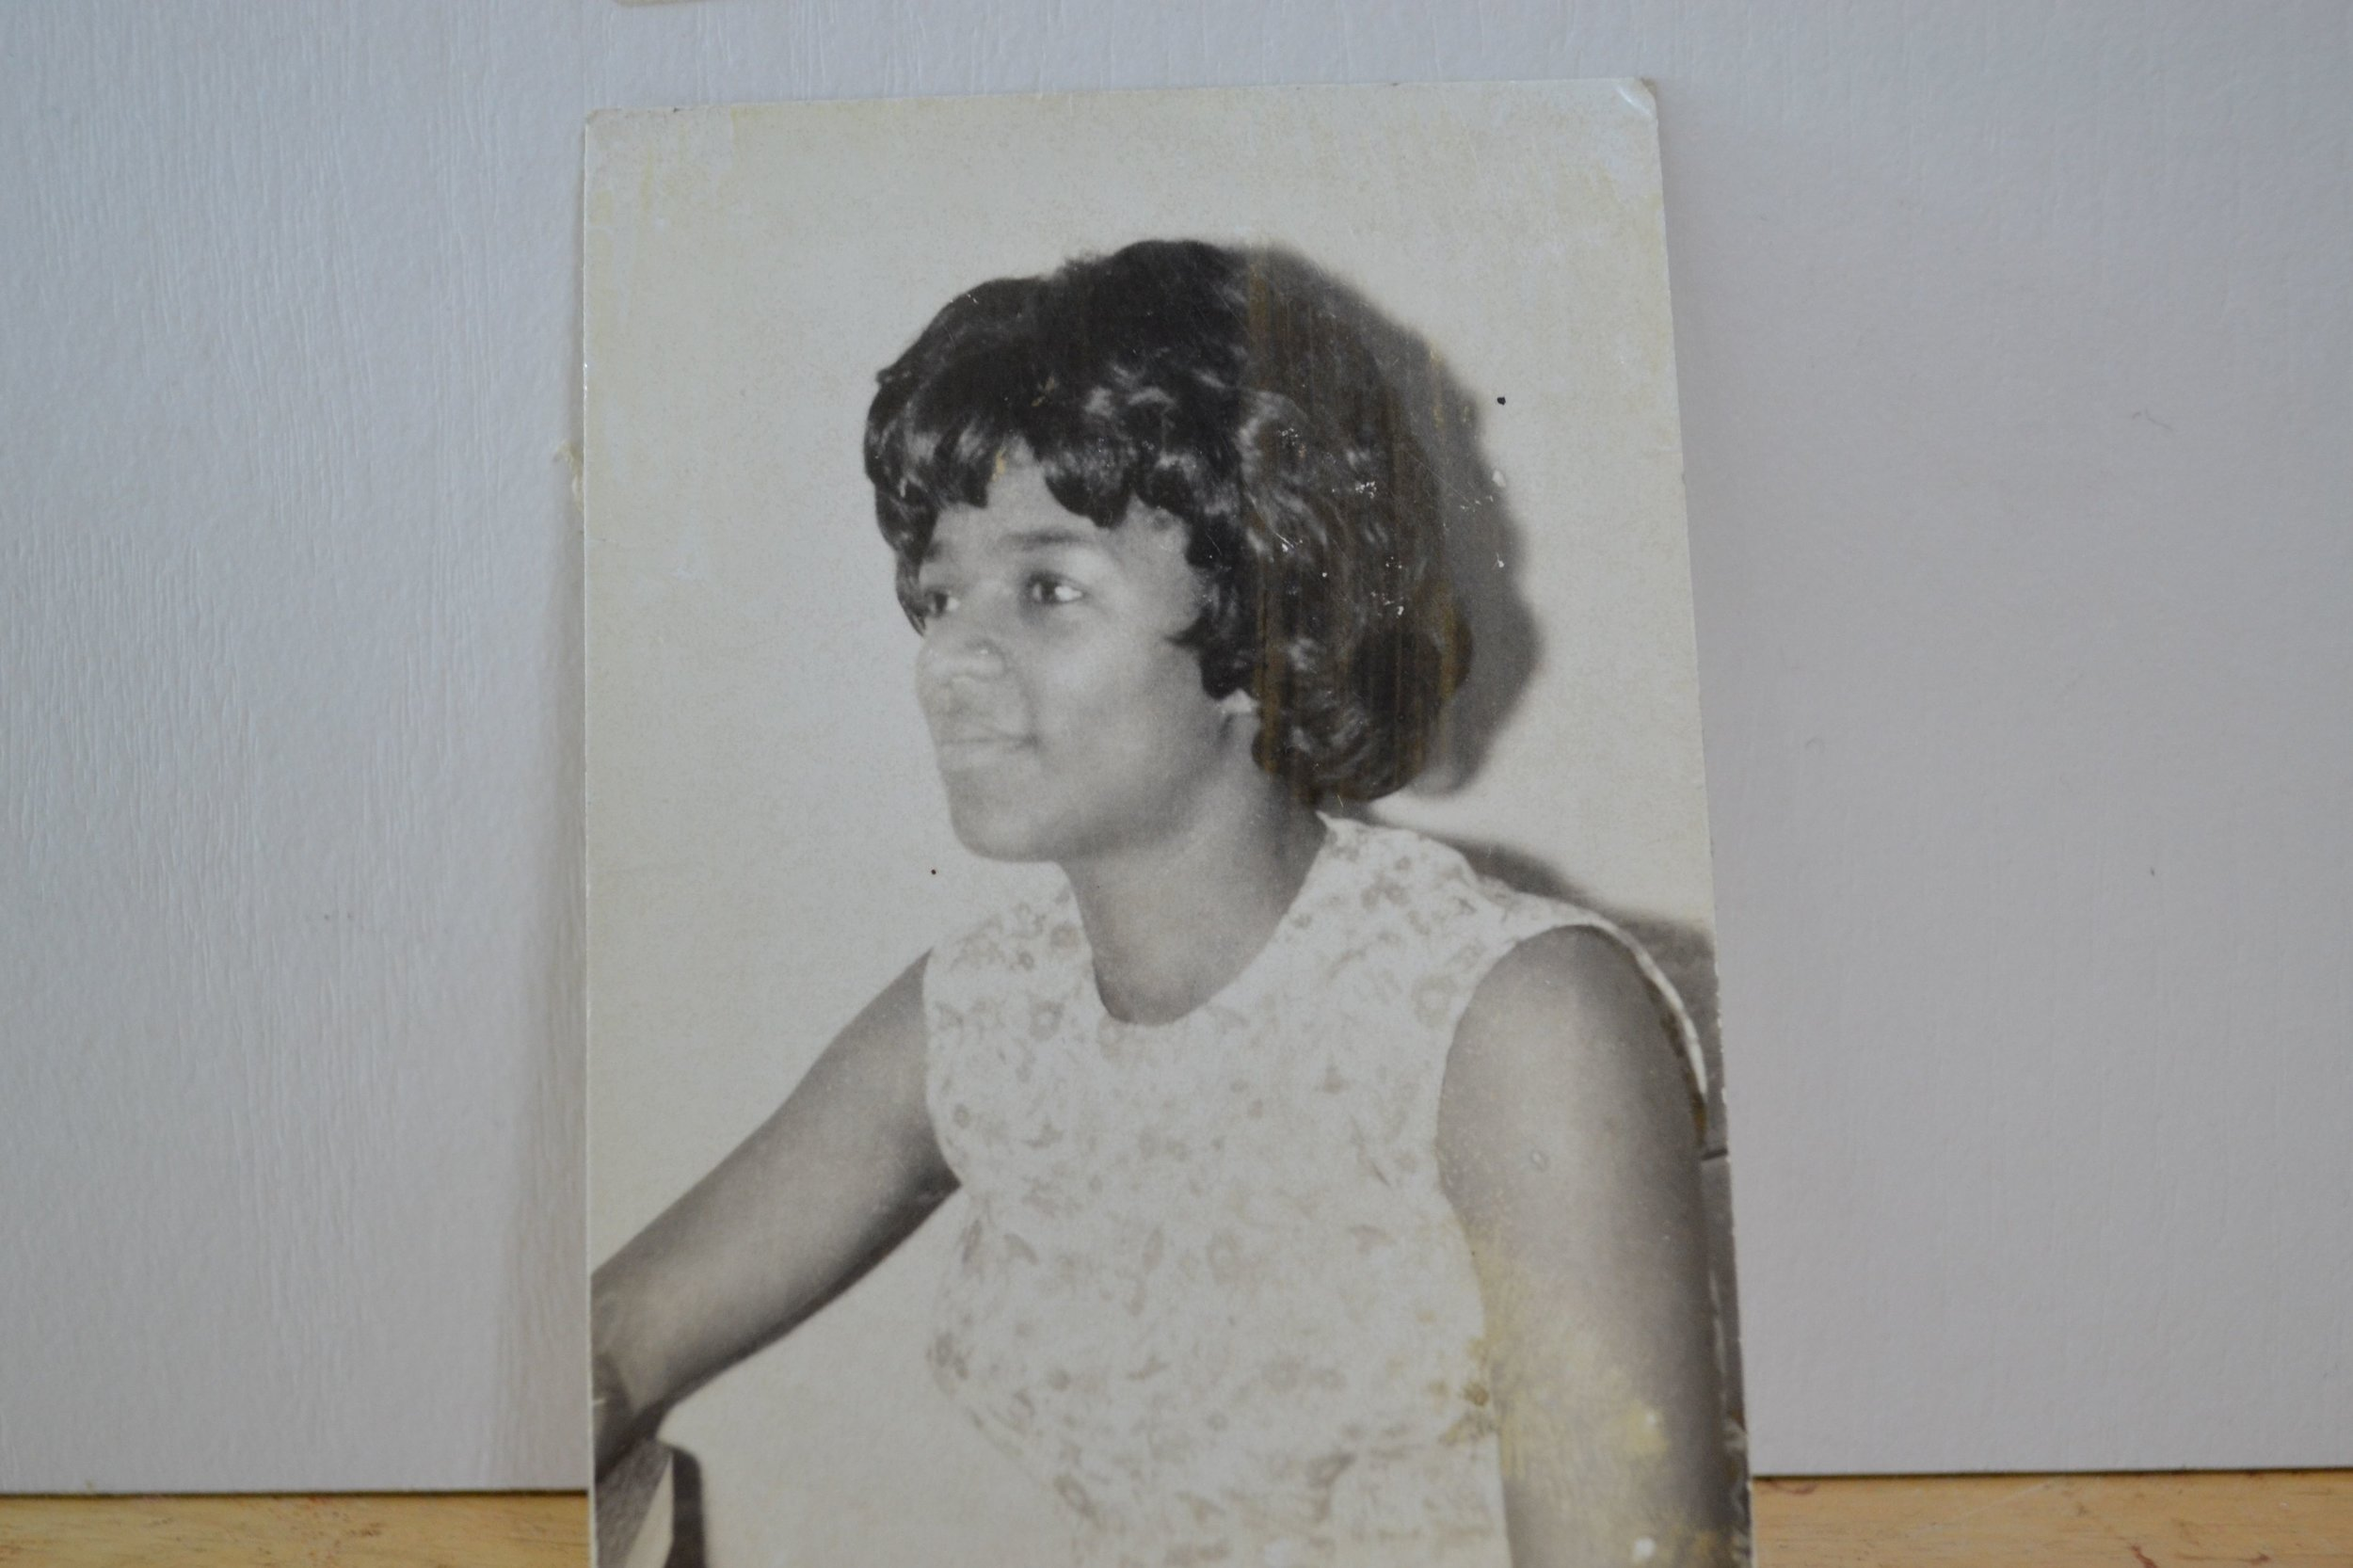 My mom, in the 60s.